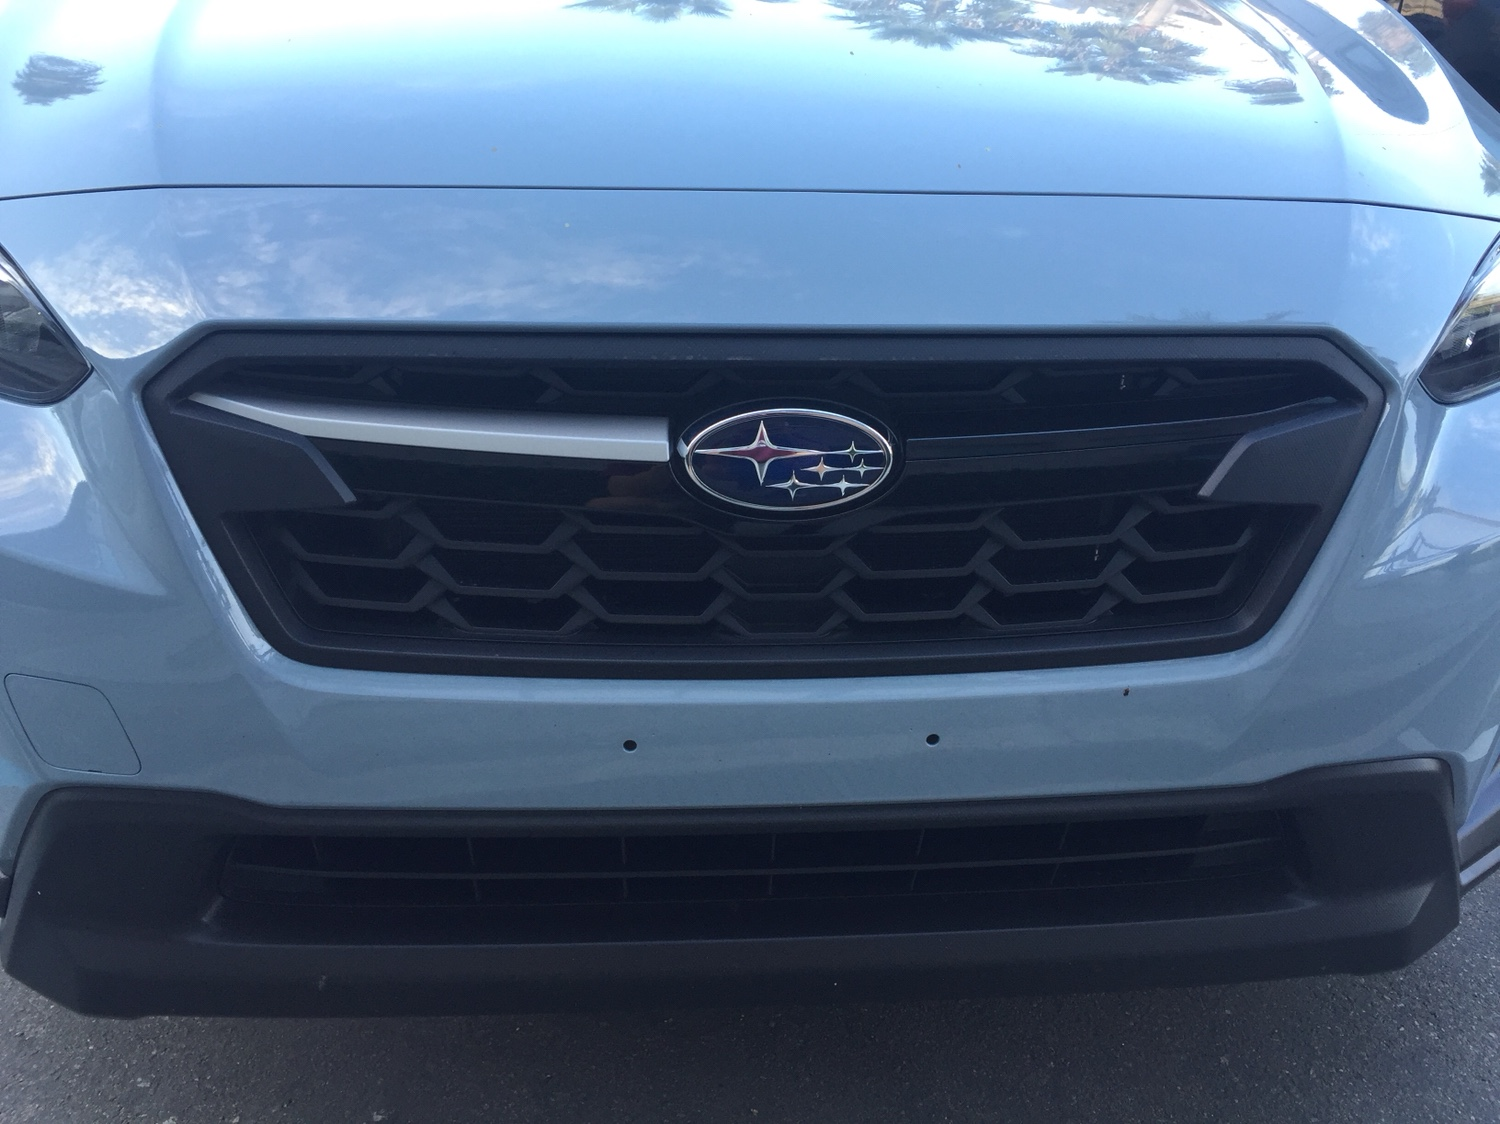 Model Year 2018 And Newer Front Grill Winglets